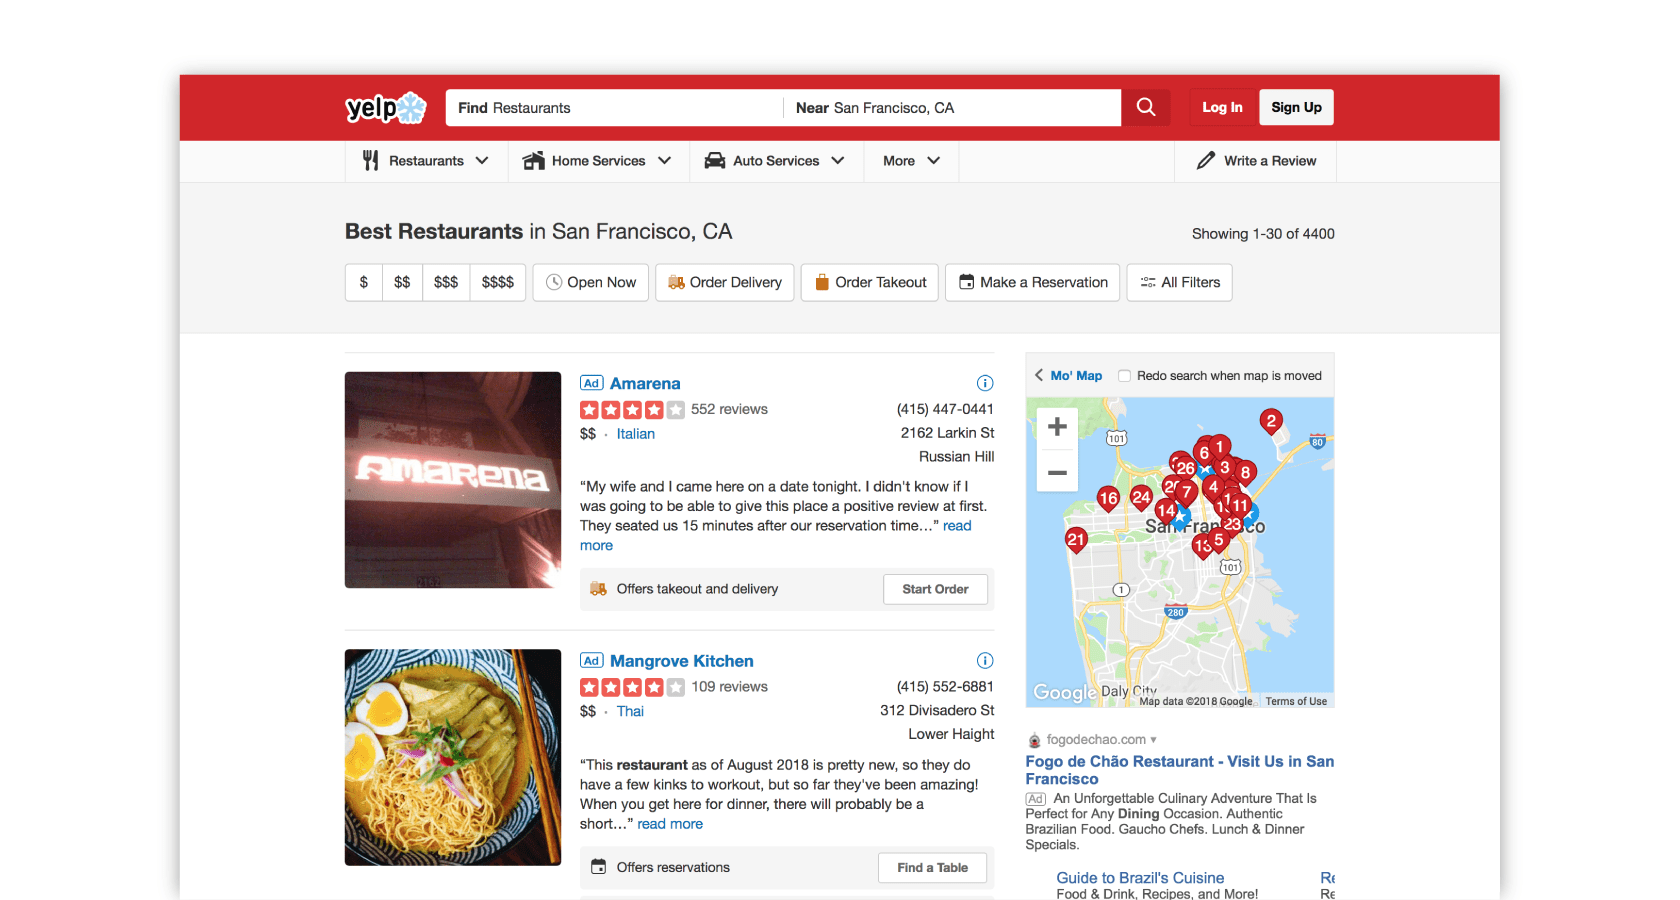 Yelp's scanning pattern based on user research